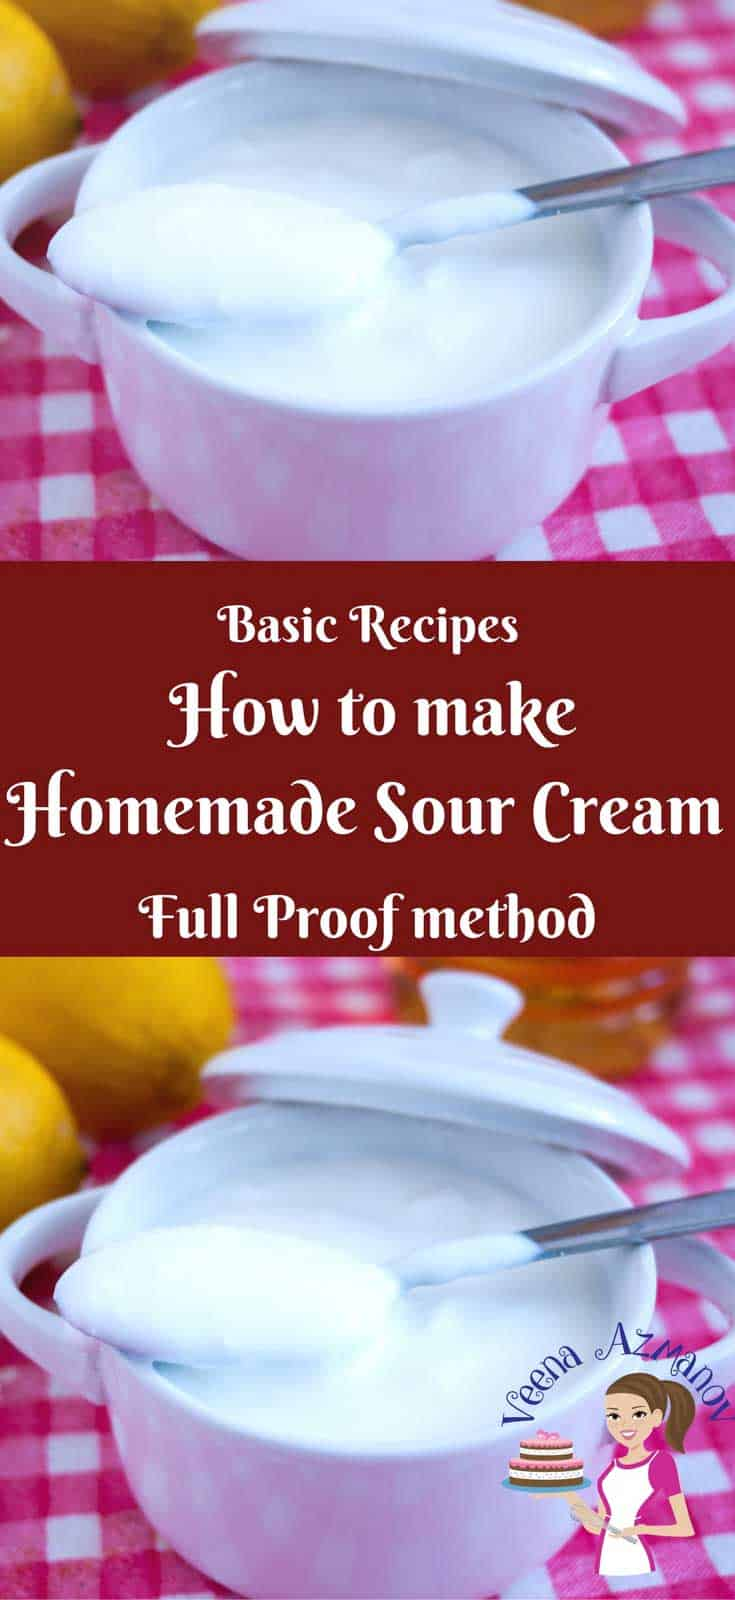 Nothing beat homemade and homemade sour cream is so simple, easy and effortless, not to mention healthier. The only dilemma is usually the waiting time which requires you planning in advance. In this post I share my full-proof method that will give you perfect sour cream every single time.